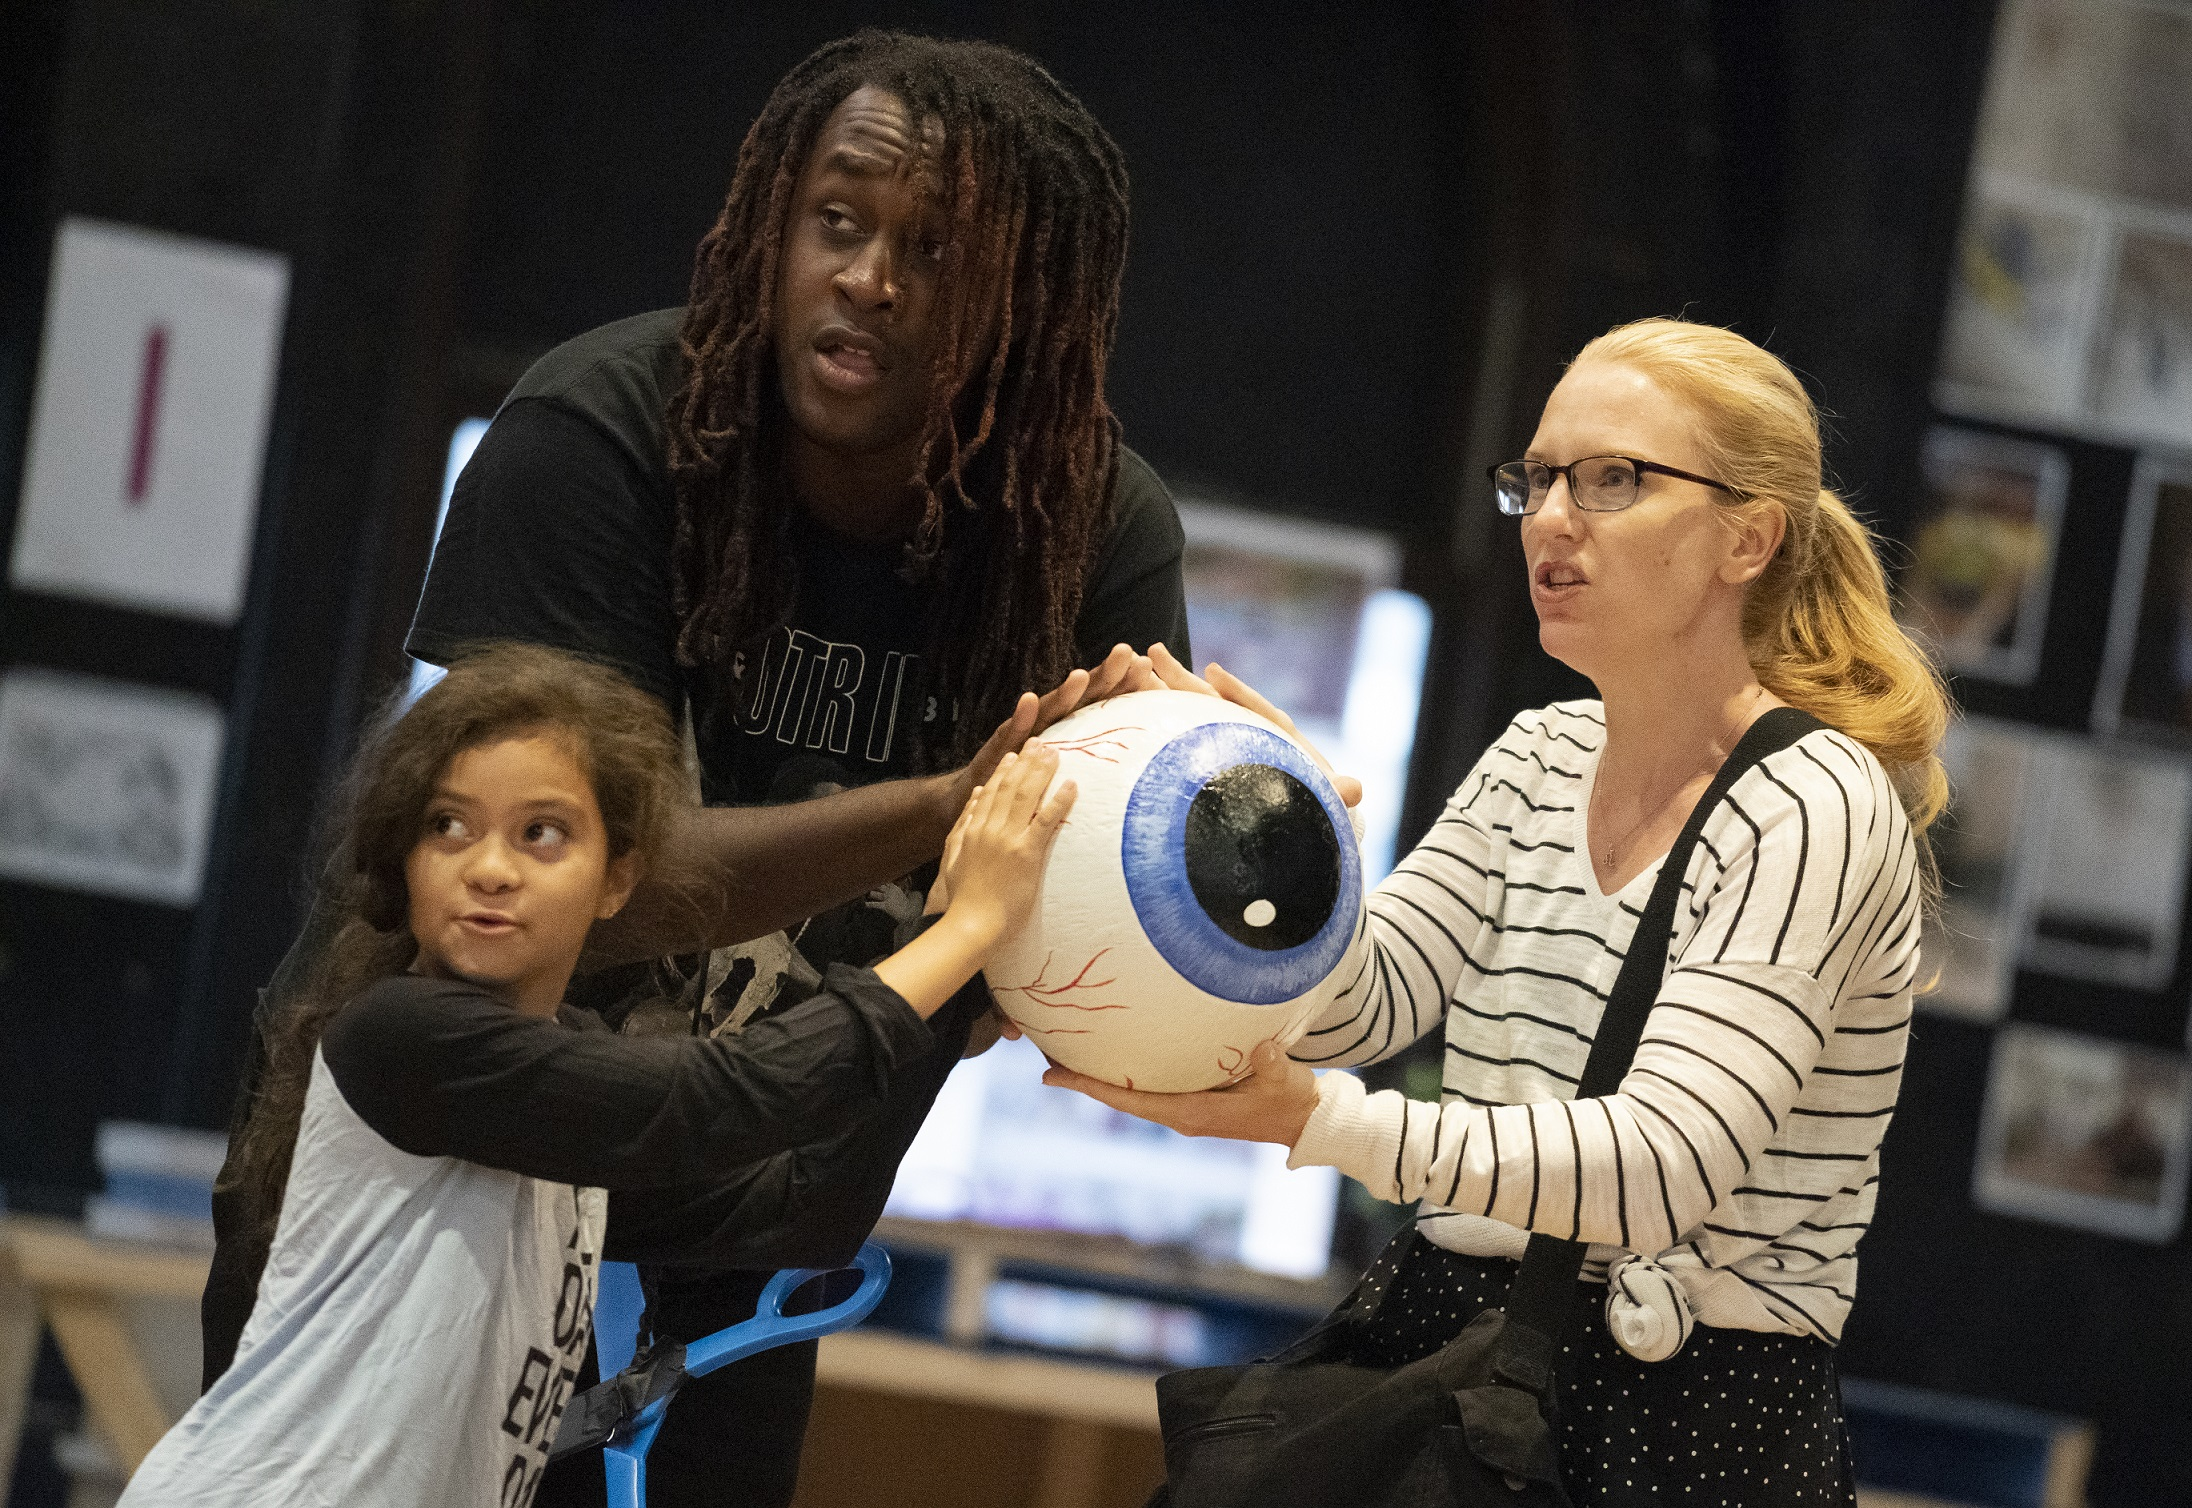 Isabelle Romero, Hasaan Bailey, and Kelly Campbell in rehearsal for Public Works' Hercules, The Public Theater's free production, directed by Lear deBessonet, running at The Delacorte Theater in Central Park starting August 31. Photo credit: Joan Marcus.